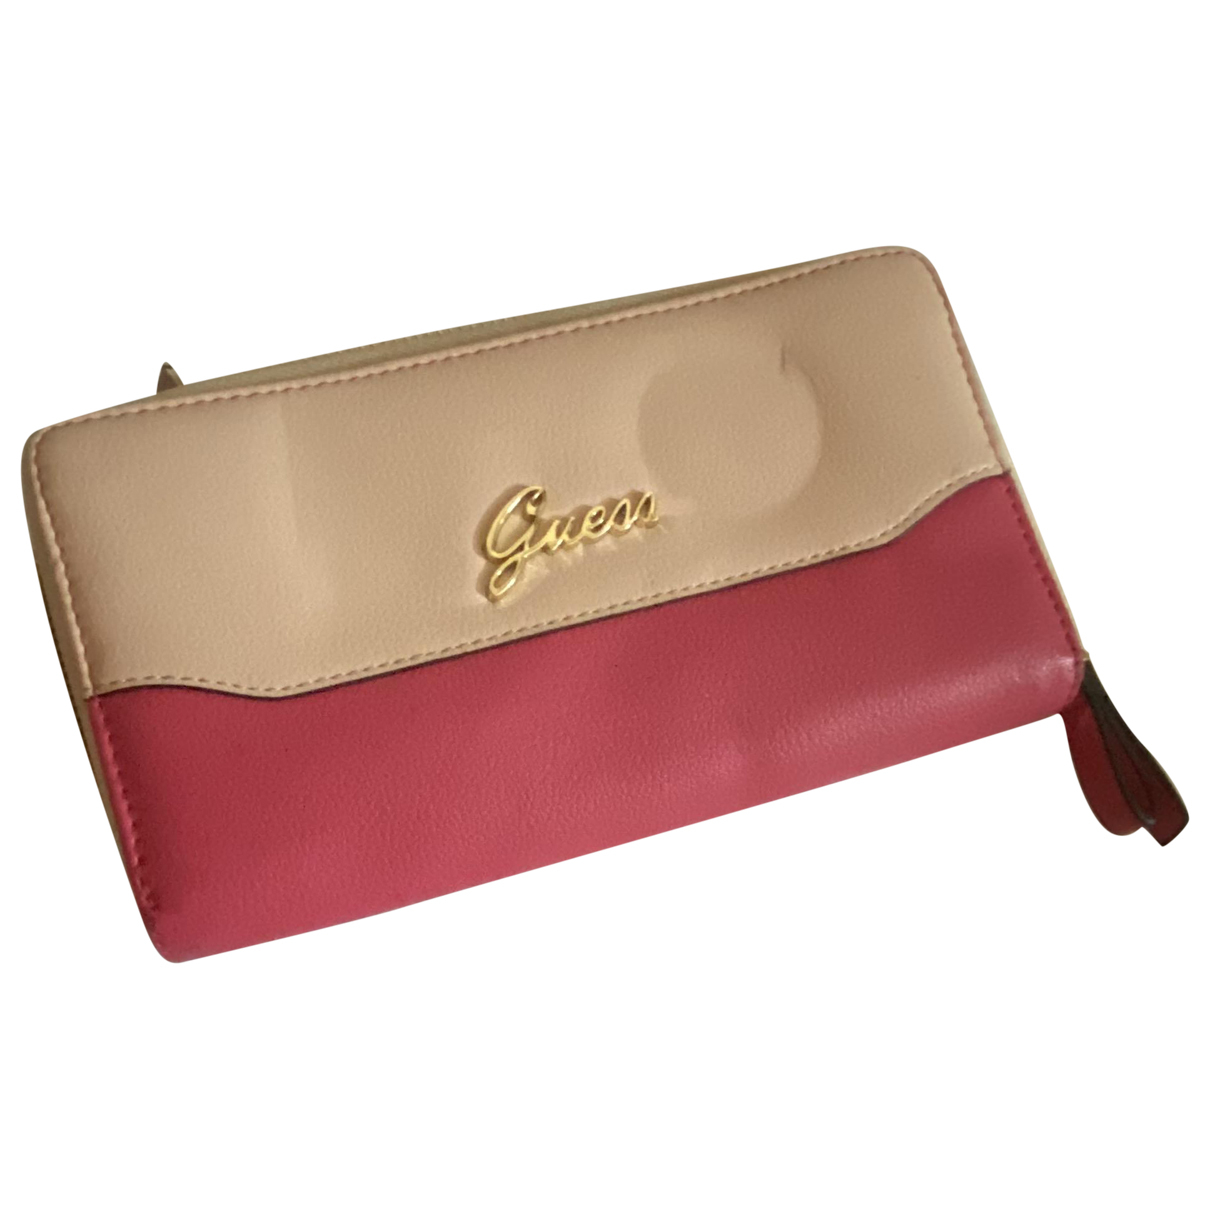 Guess \N Clutch in  Rosa Leder